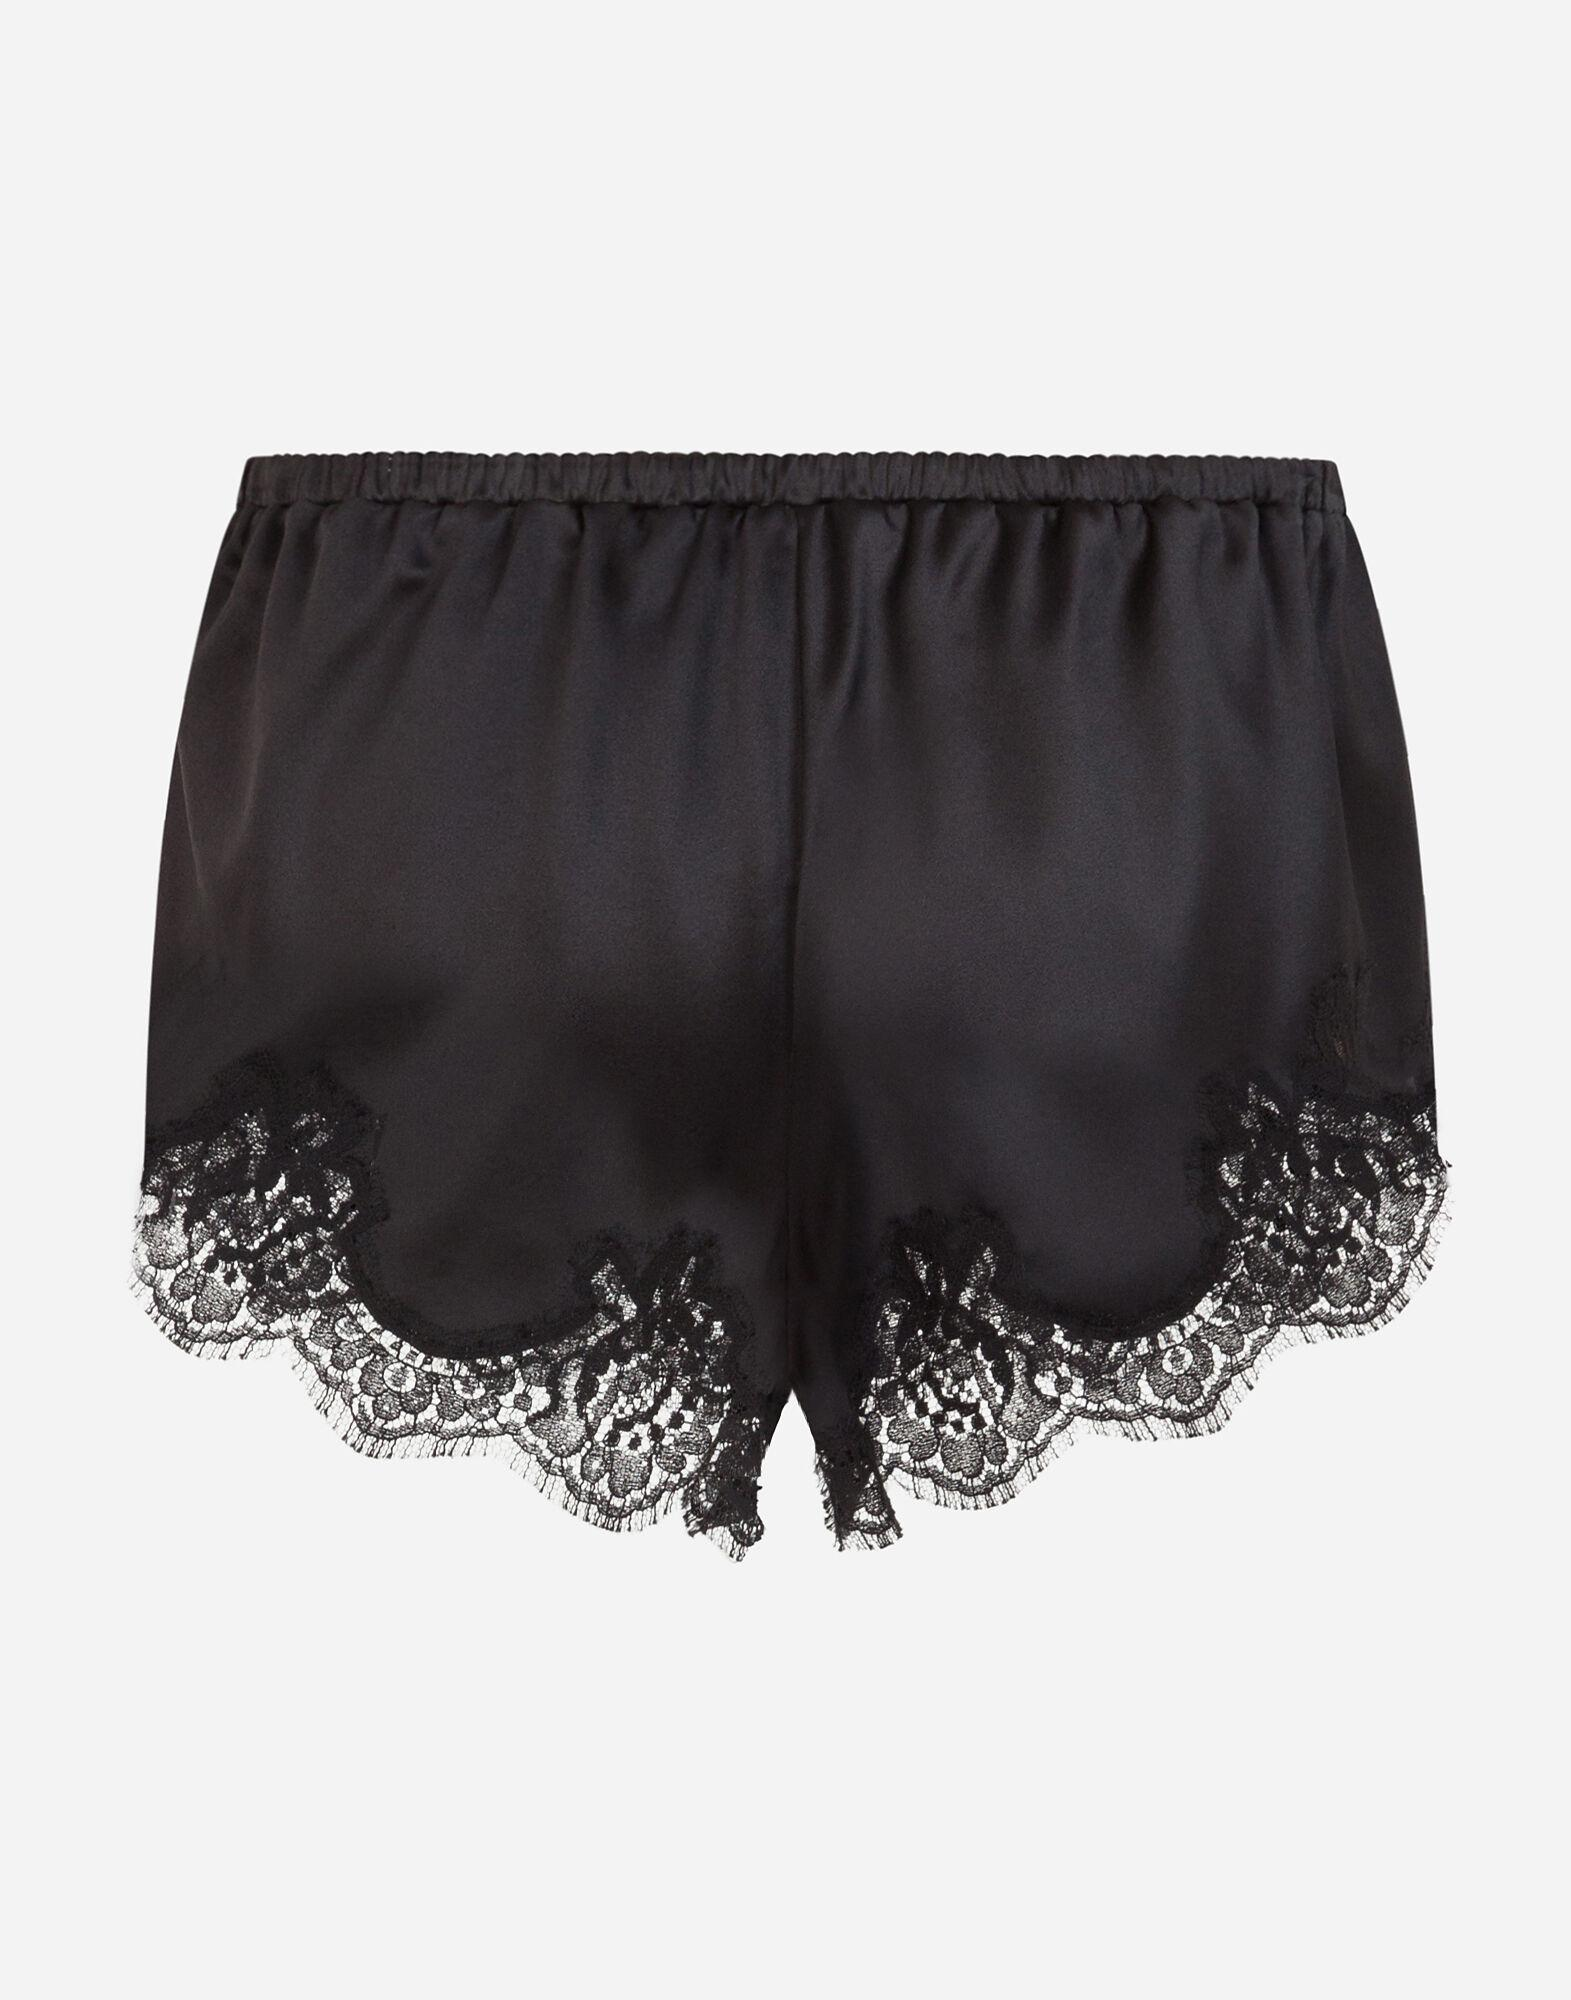 Satin lingerie shorts with lace detailing 2